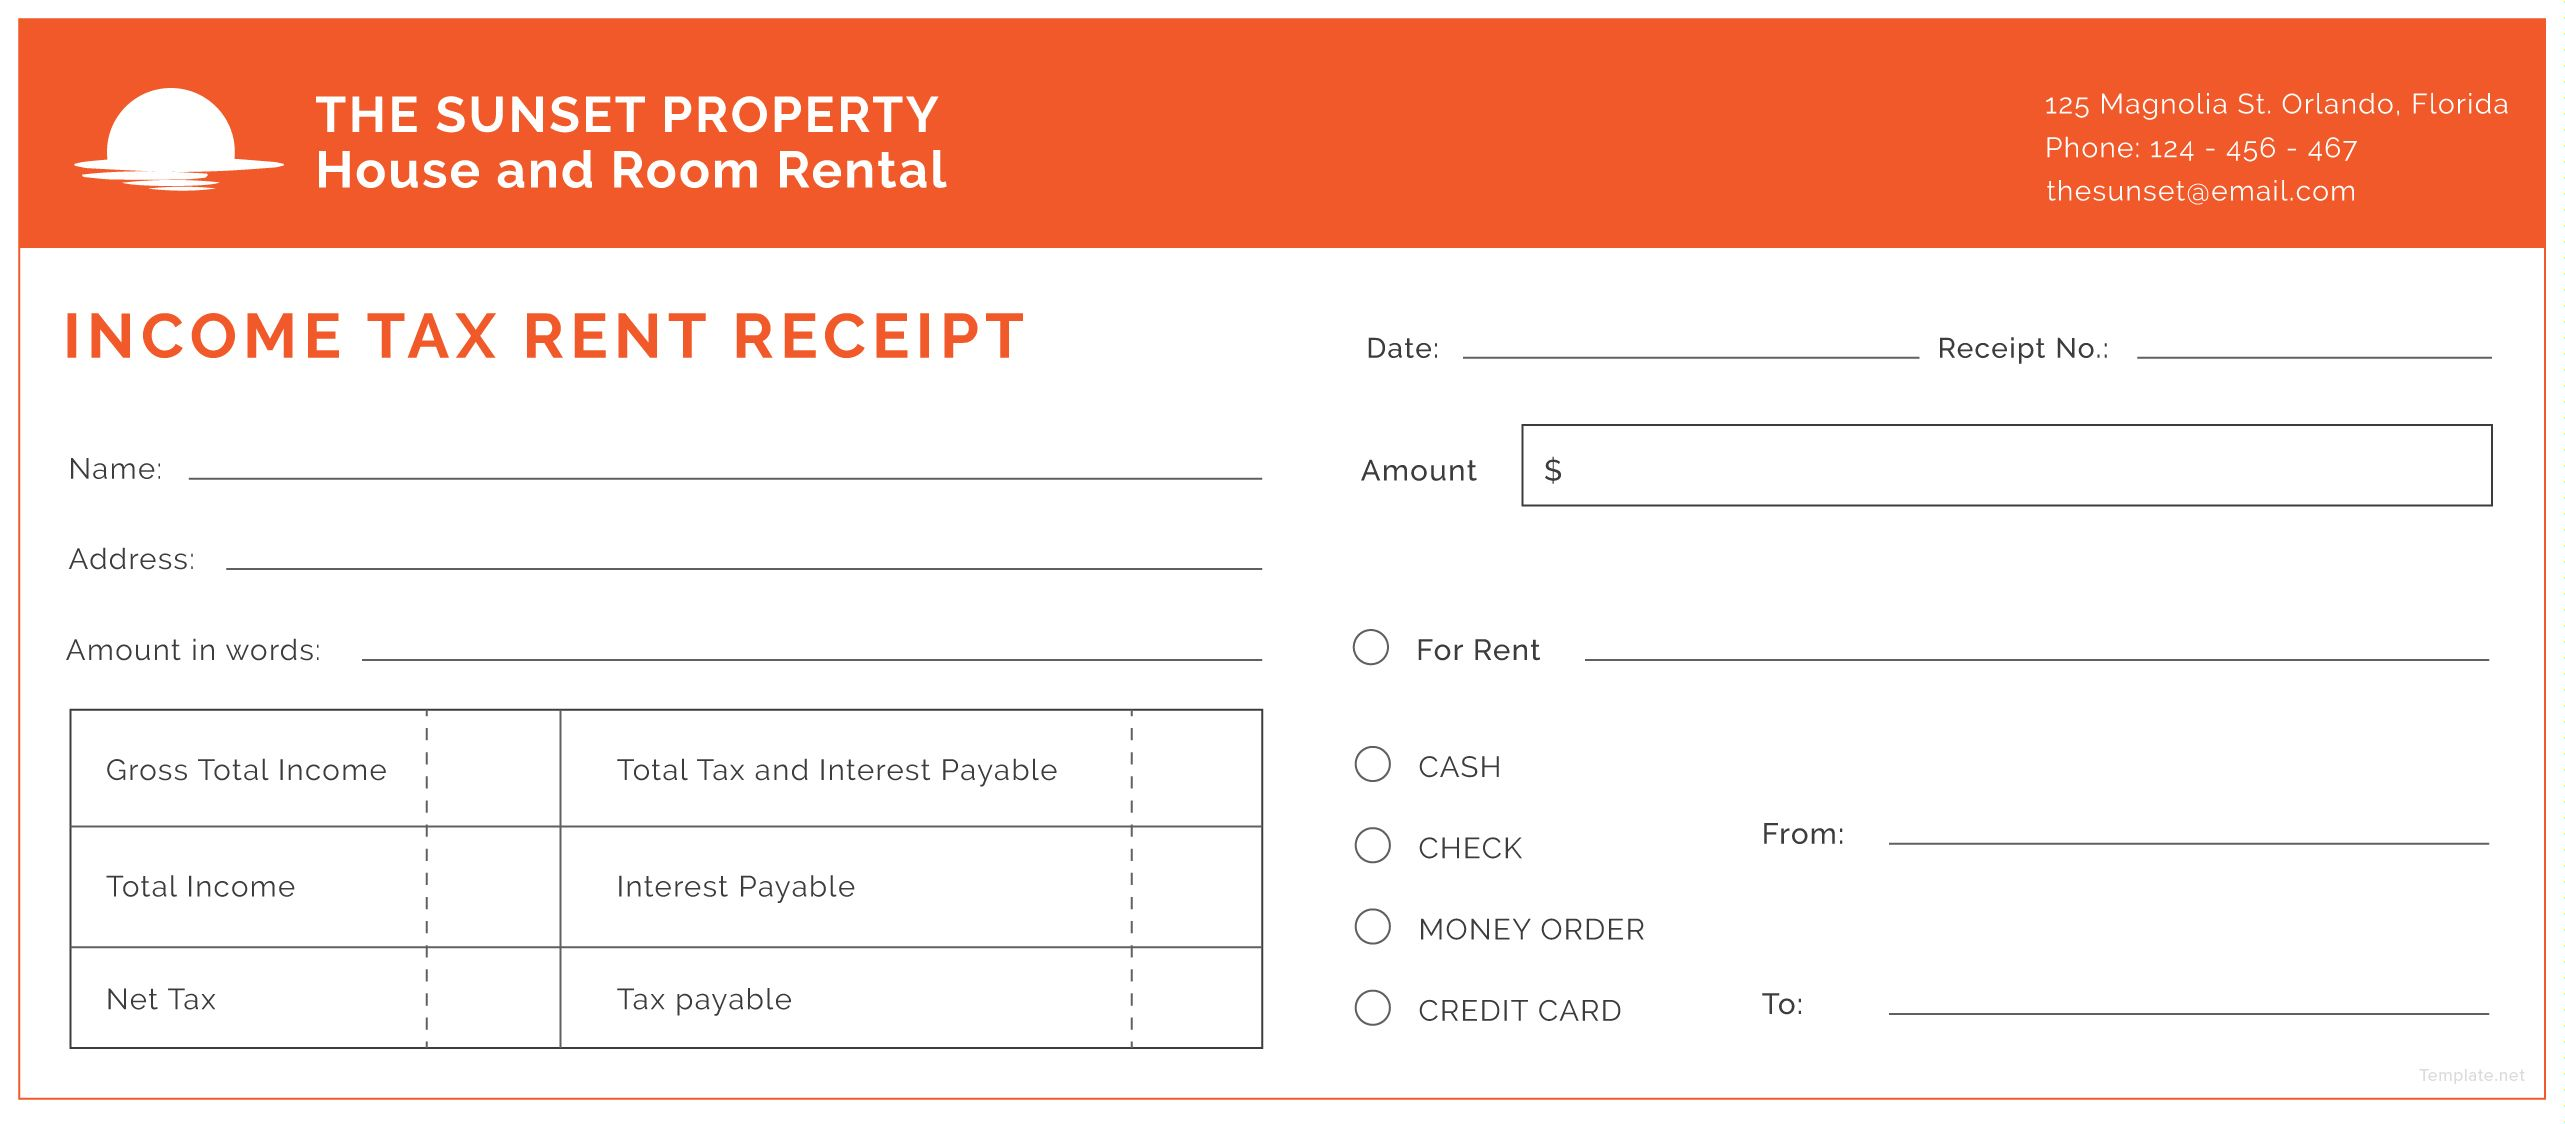 Free Rent Receipts Adorable Download Income Tax Rent Receipt Template For Free In Illustrator .